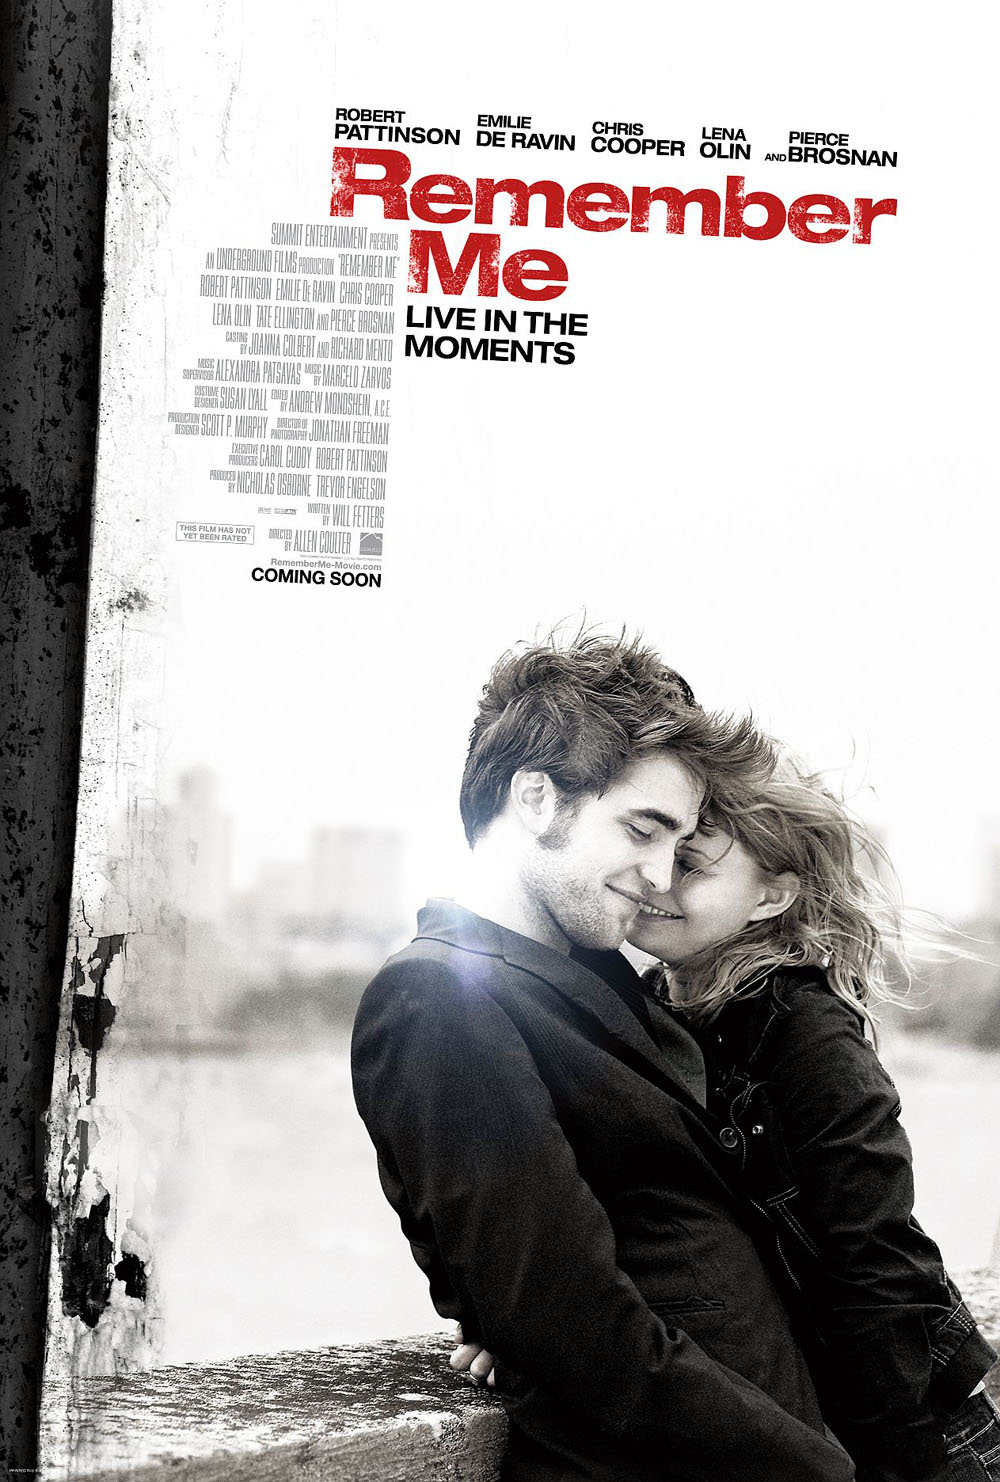 Robert Pattinson, Emilie de Ravin in Remember Me